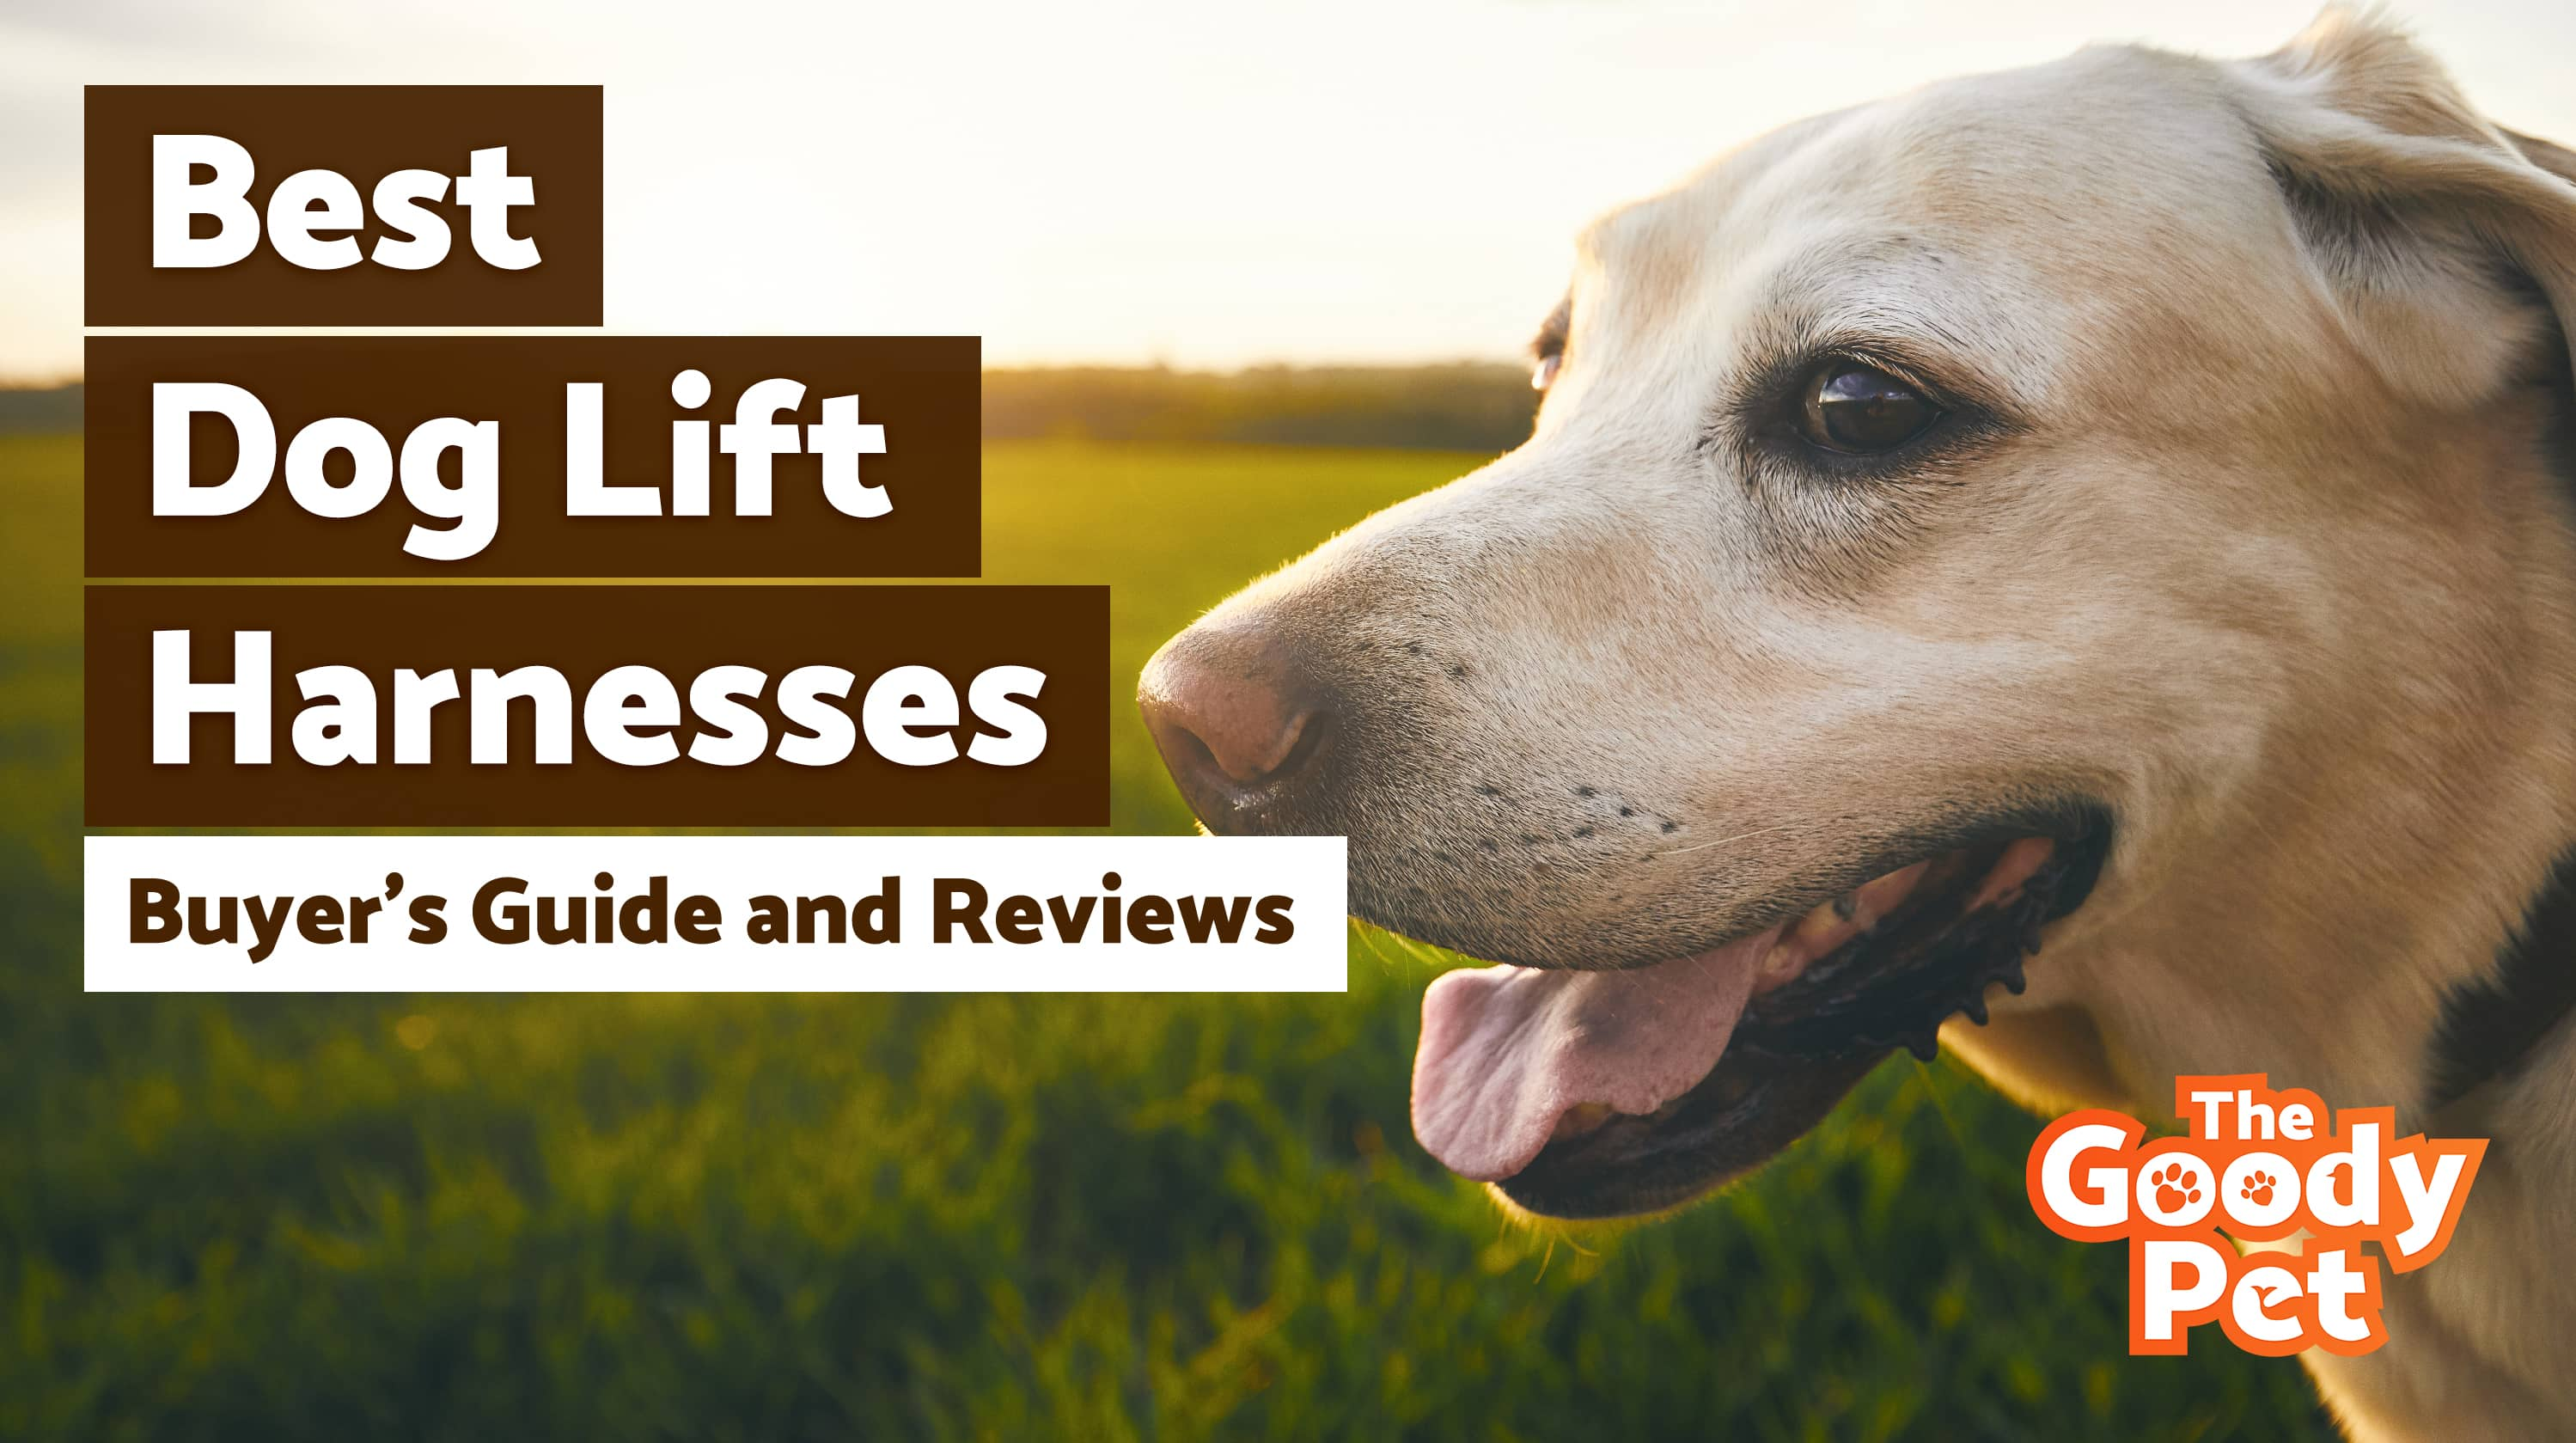 Best Dog Lift Harnesses For Your Injured Pooch – Our 2019 Reviews & Top Picks